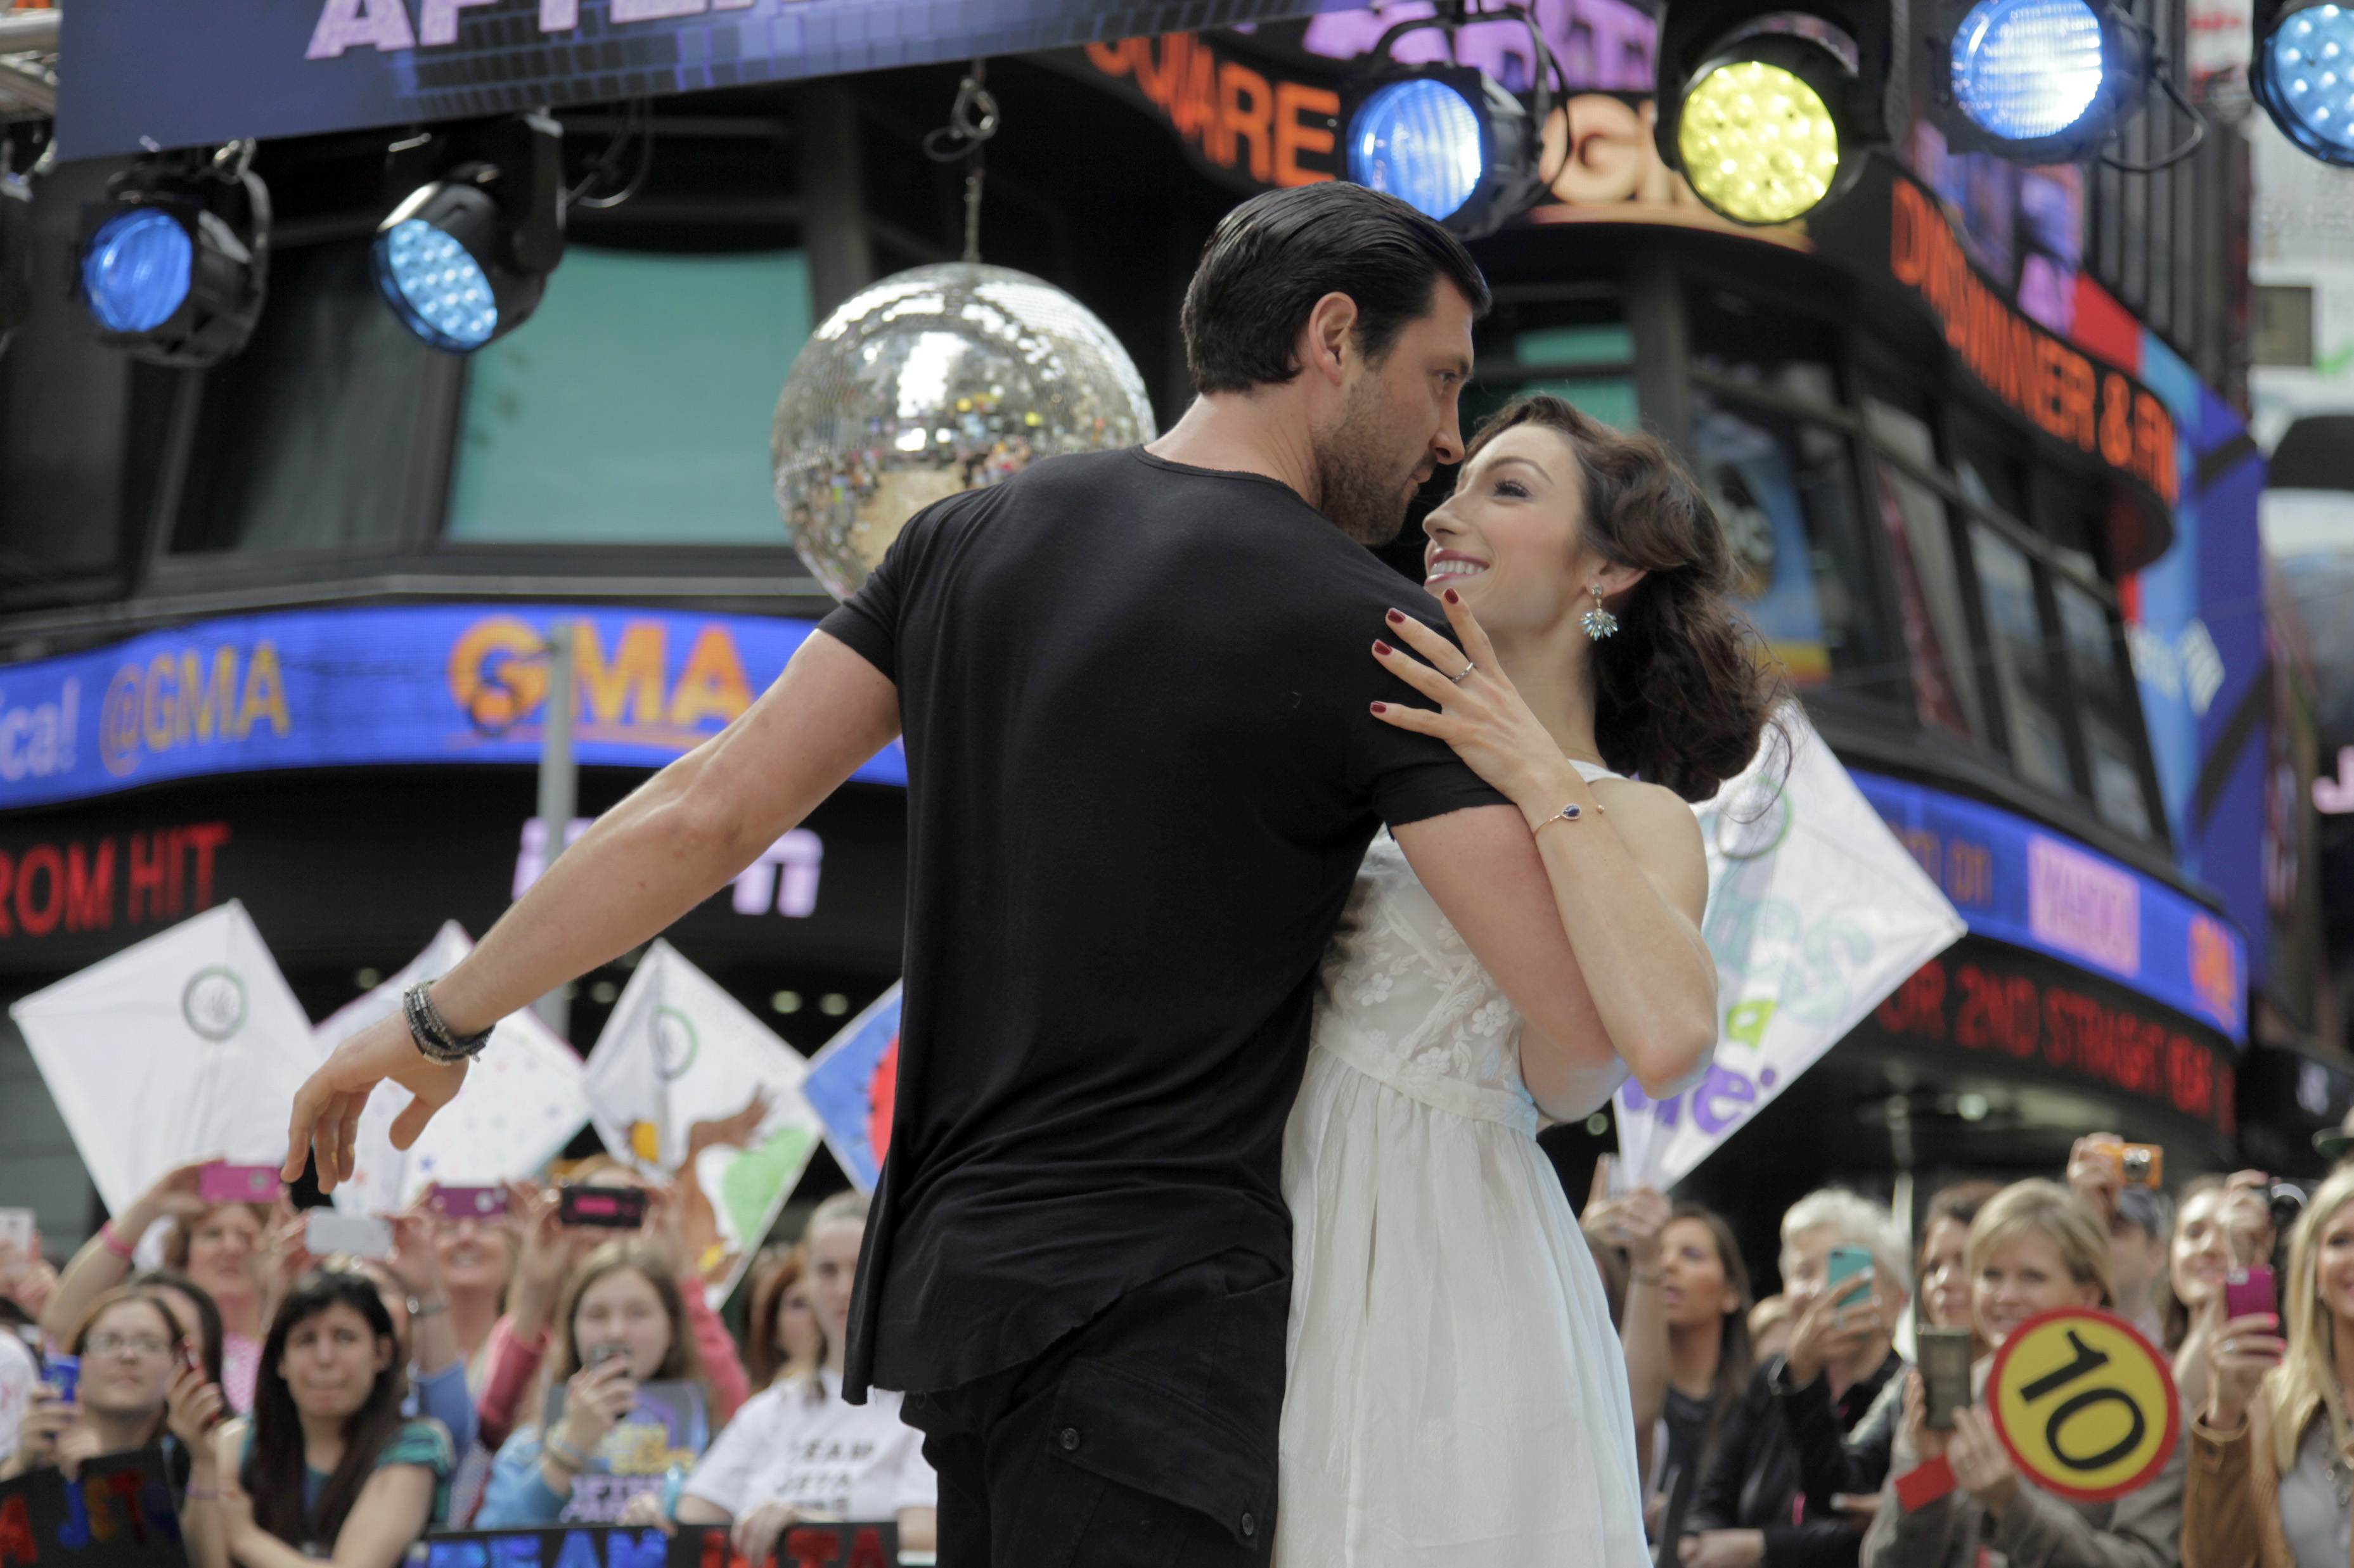 Meryl Davis Boyfriend 2014 Rumors Dancing With The Stars: Meryl And Maks: Meryl Davis, Maksim Chmerkovskiy Won